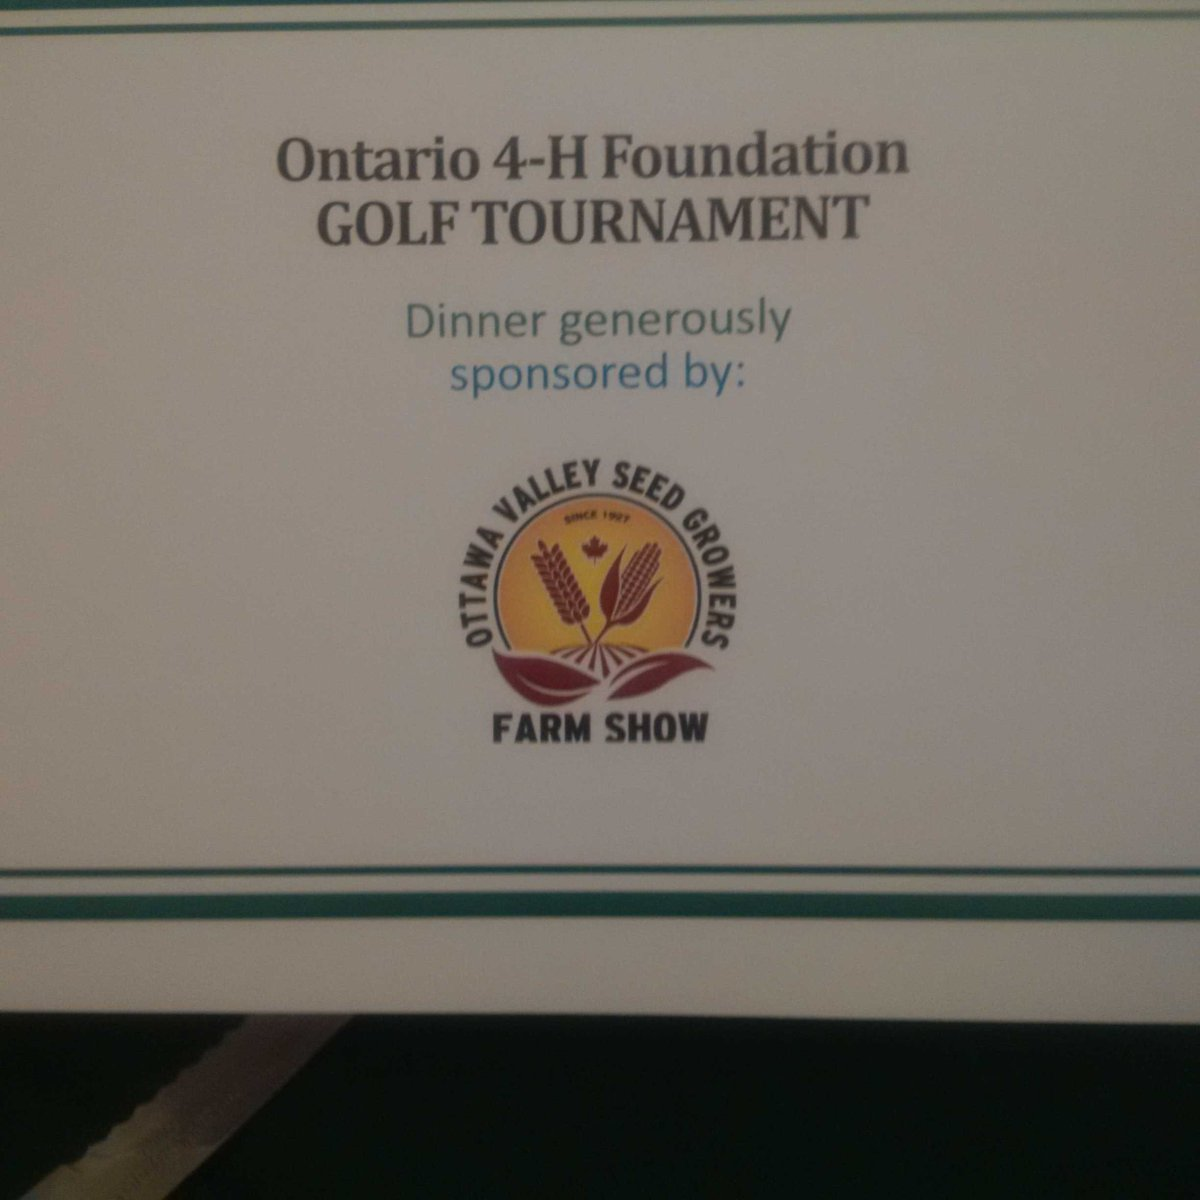 Great day at @4HOnt Golf Tournament. Looking forward to dinner sponsored by @ottawafarmshow https://t.co/GQyCKJXEyM